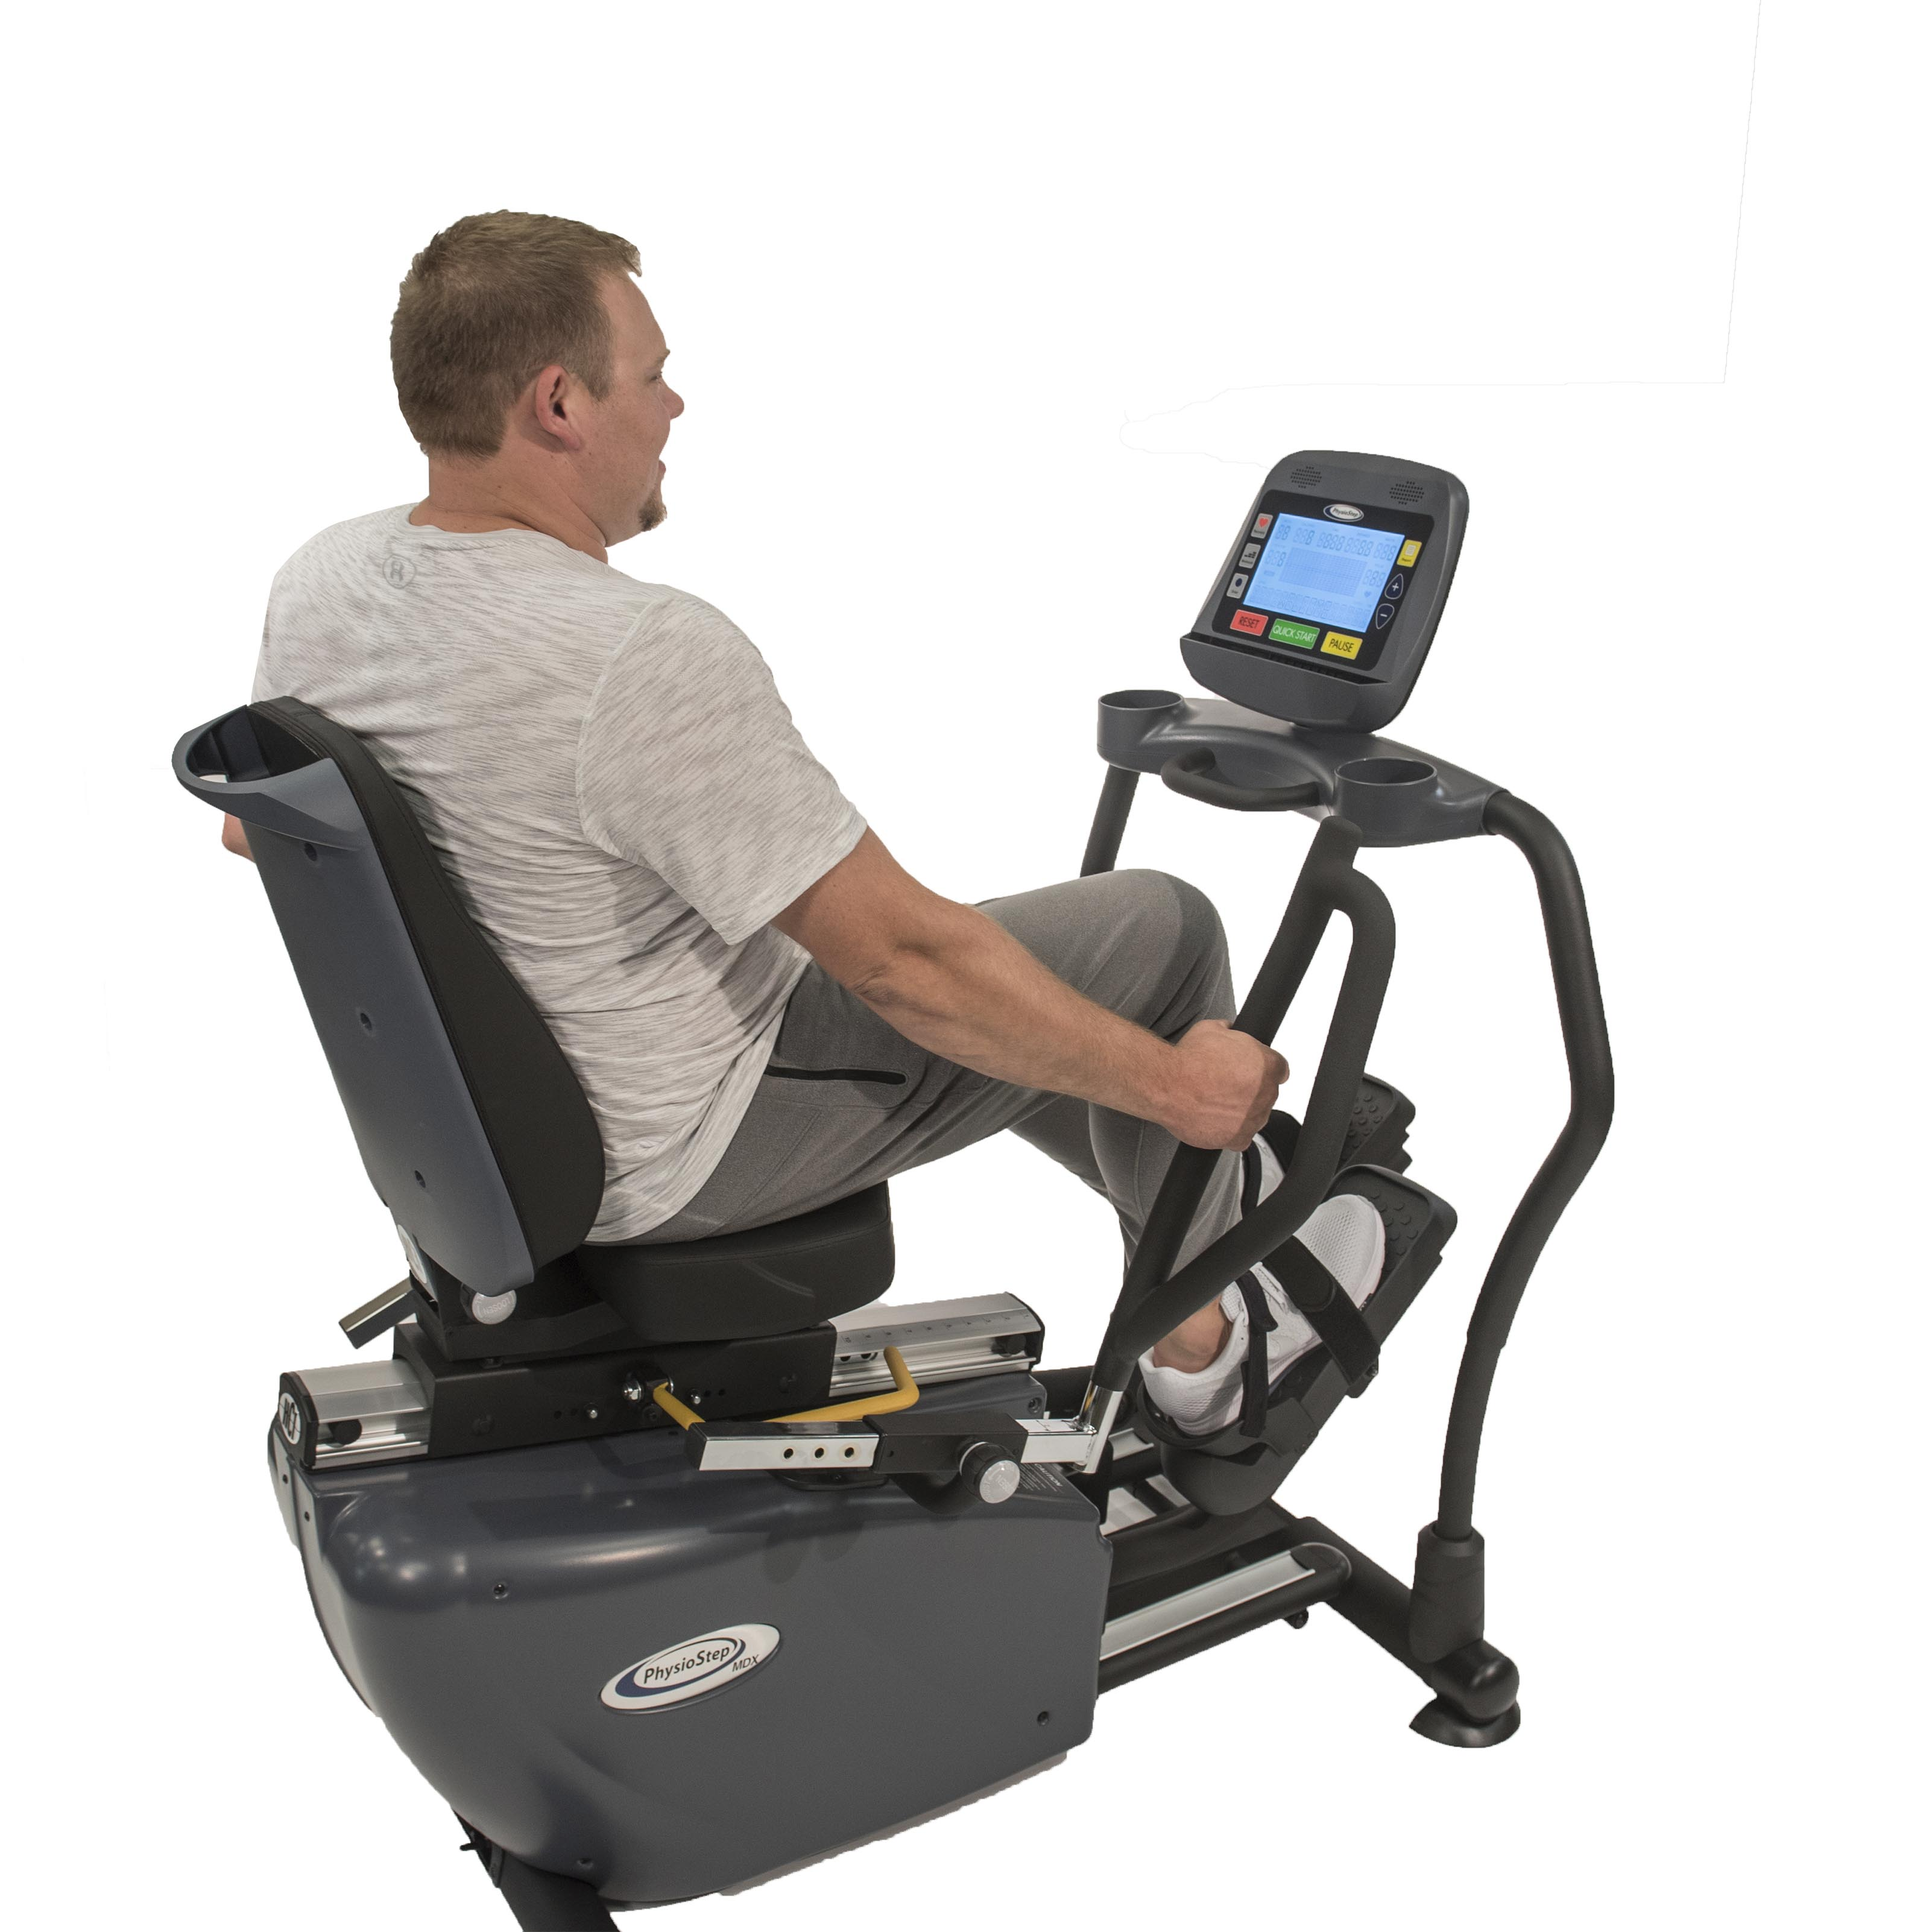 PhysioStep MDX Recumbent Elliptical Model